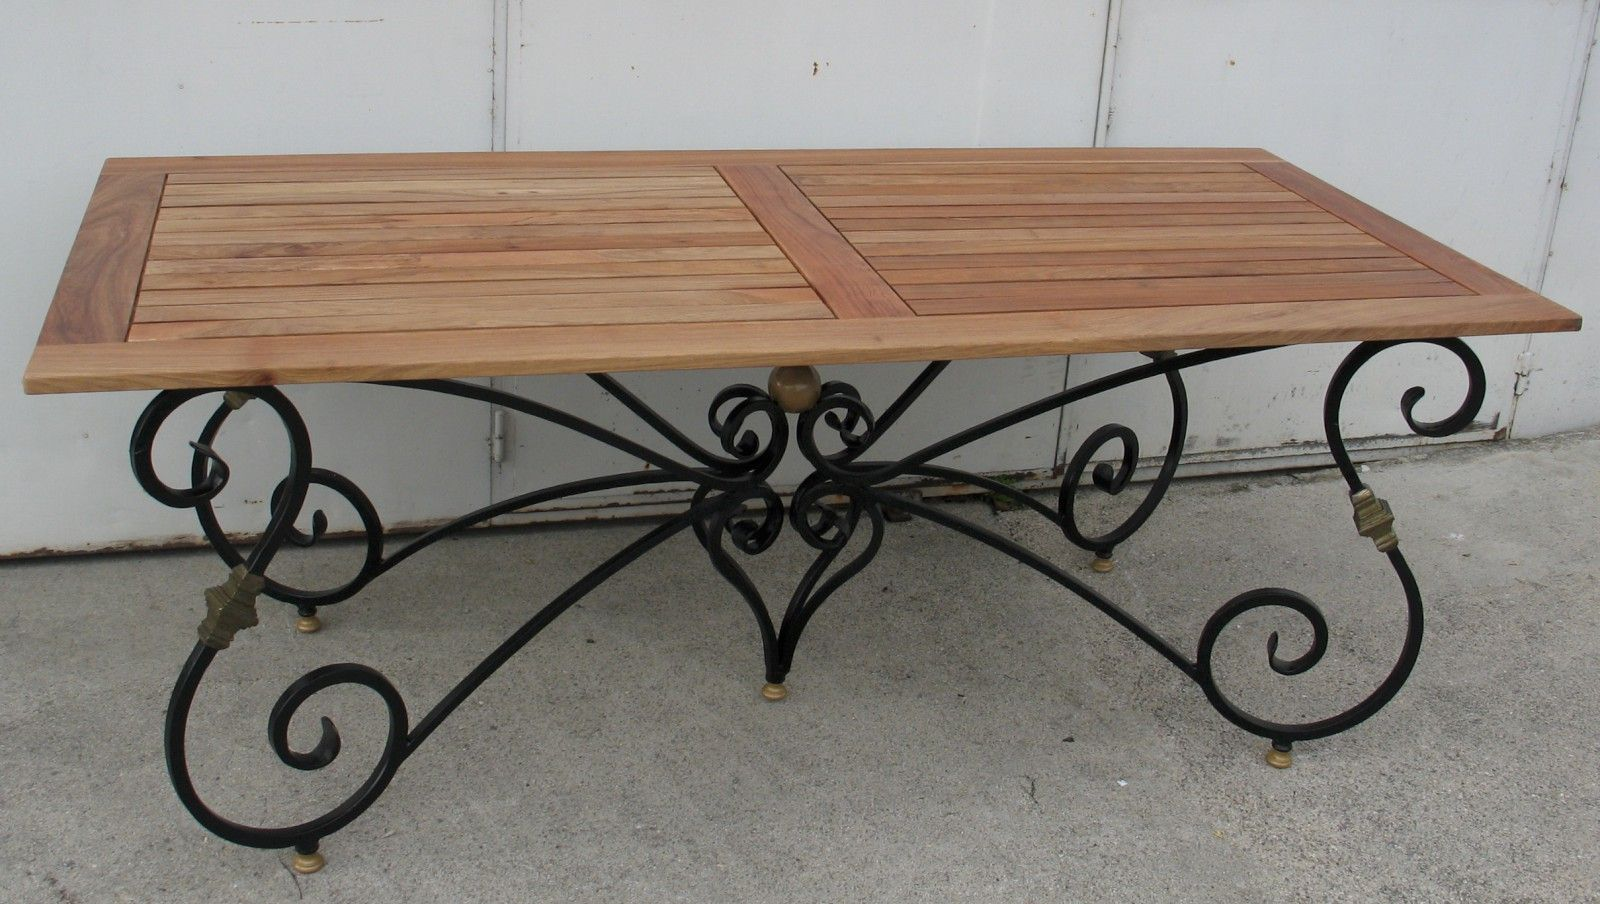 Dining Table With Base In Black And Gold Wrought Iron With Openwork Teak Tray Wrought Iron Table Legs Wrought Iron Dining Table Wrought Iron Table